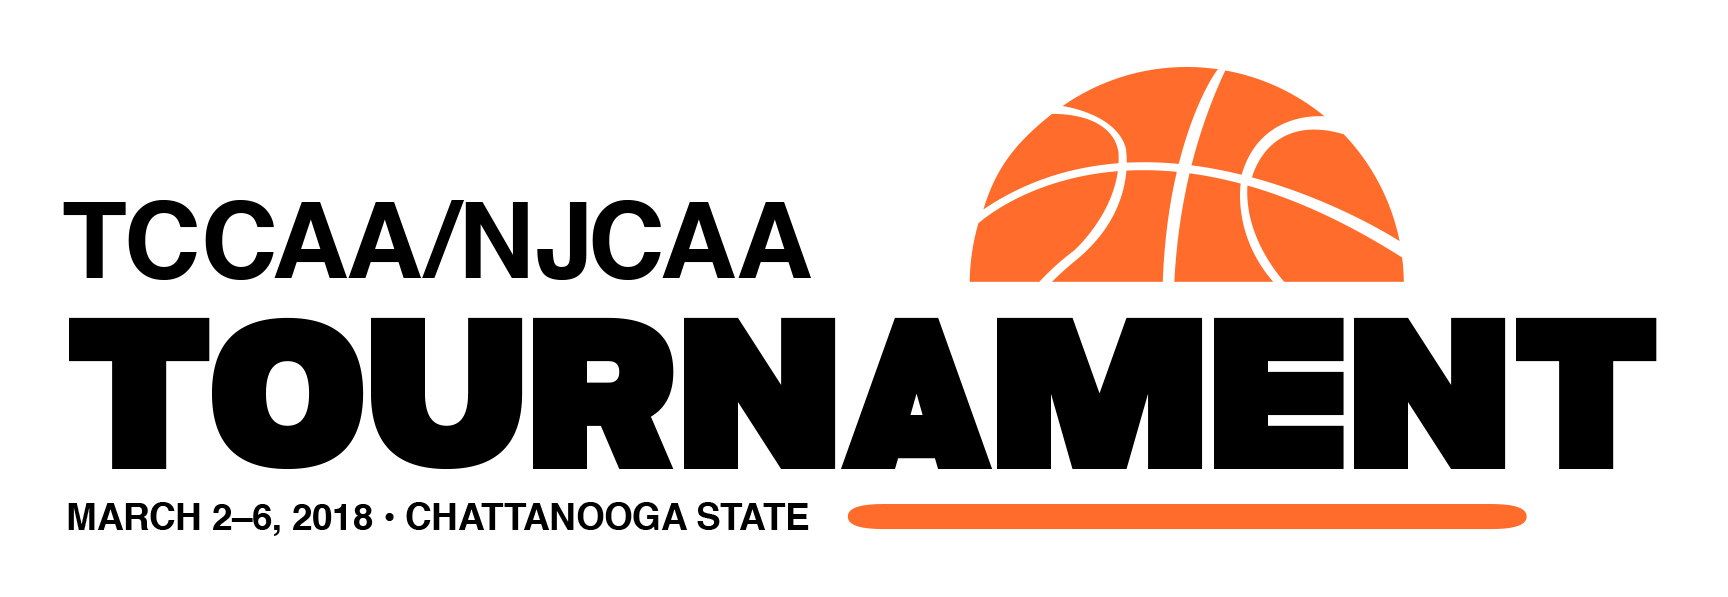 TCCAA 2018 tournament logo